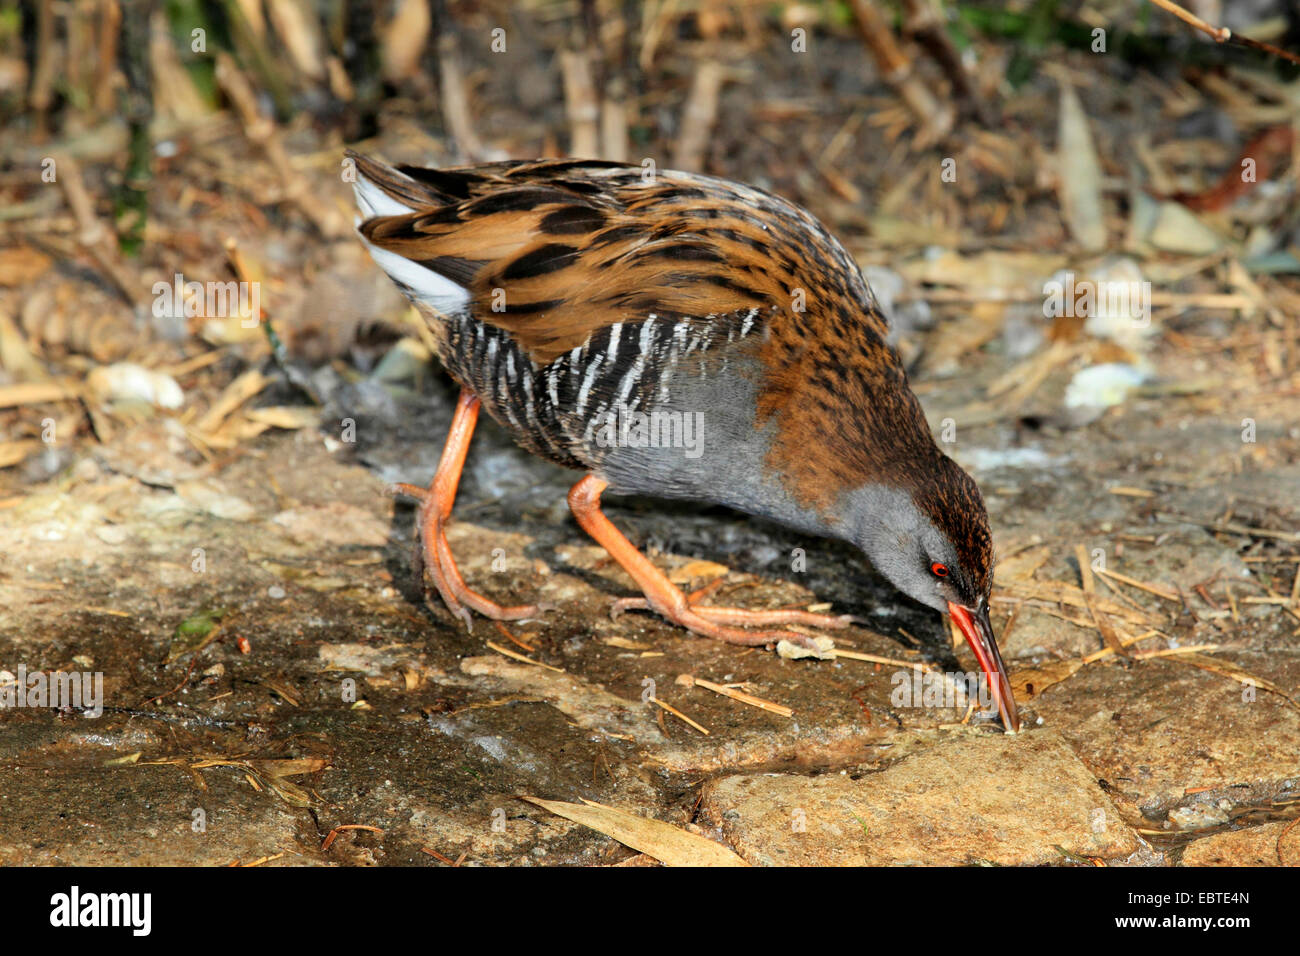 water rail (Rallus aquaticus), looking for food on stony ground, Germany - Stock Image